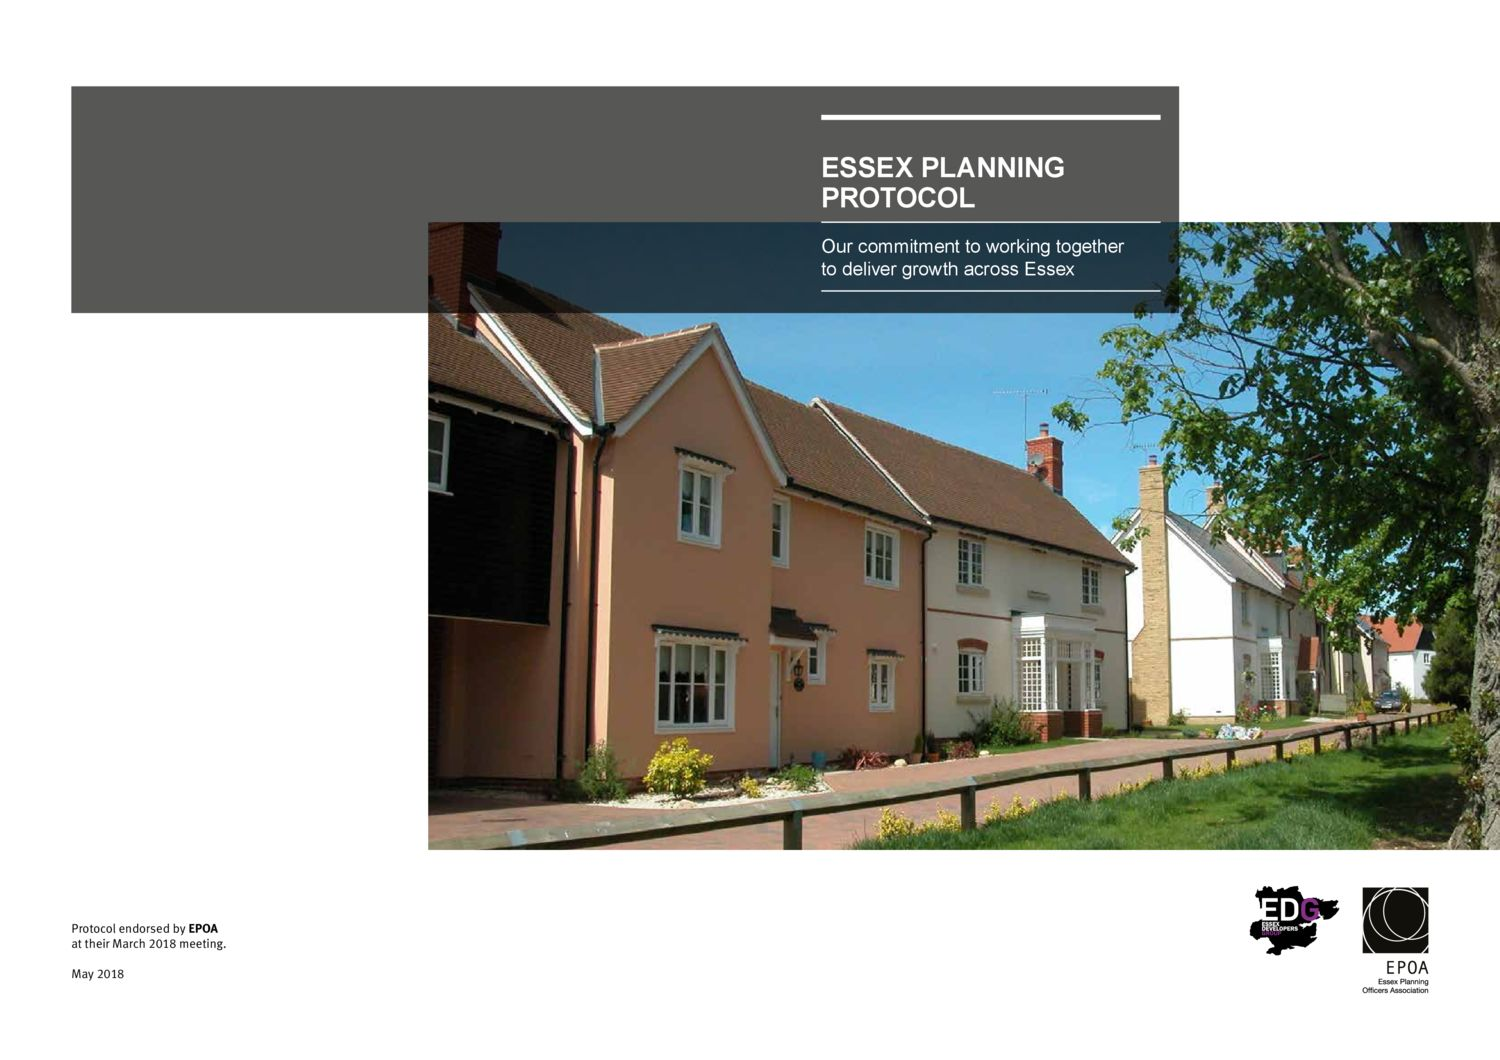 Greater Essex Planning Protocol